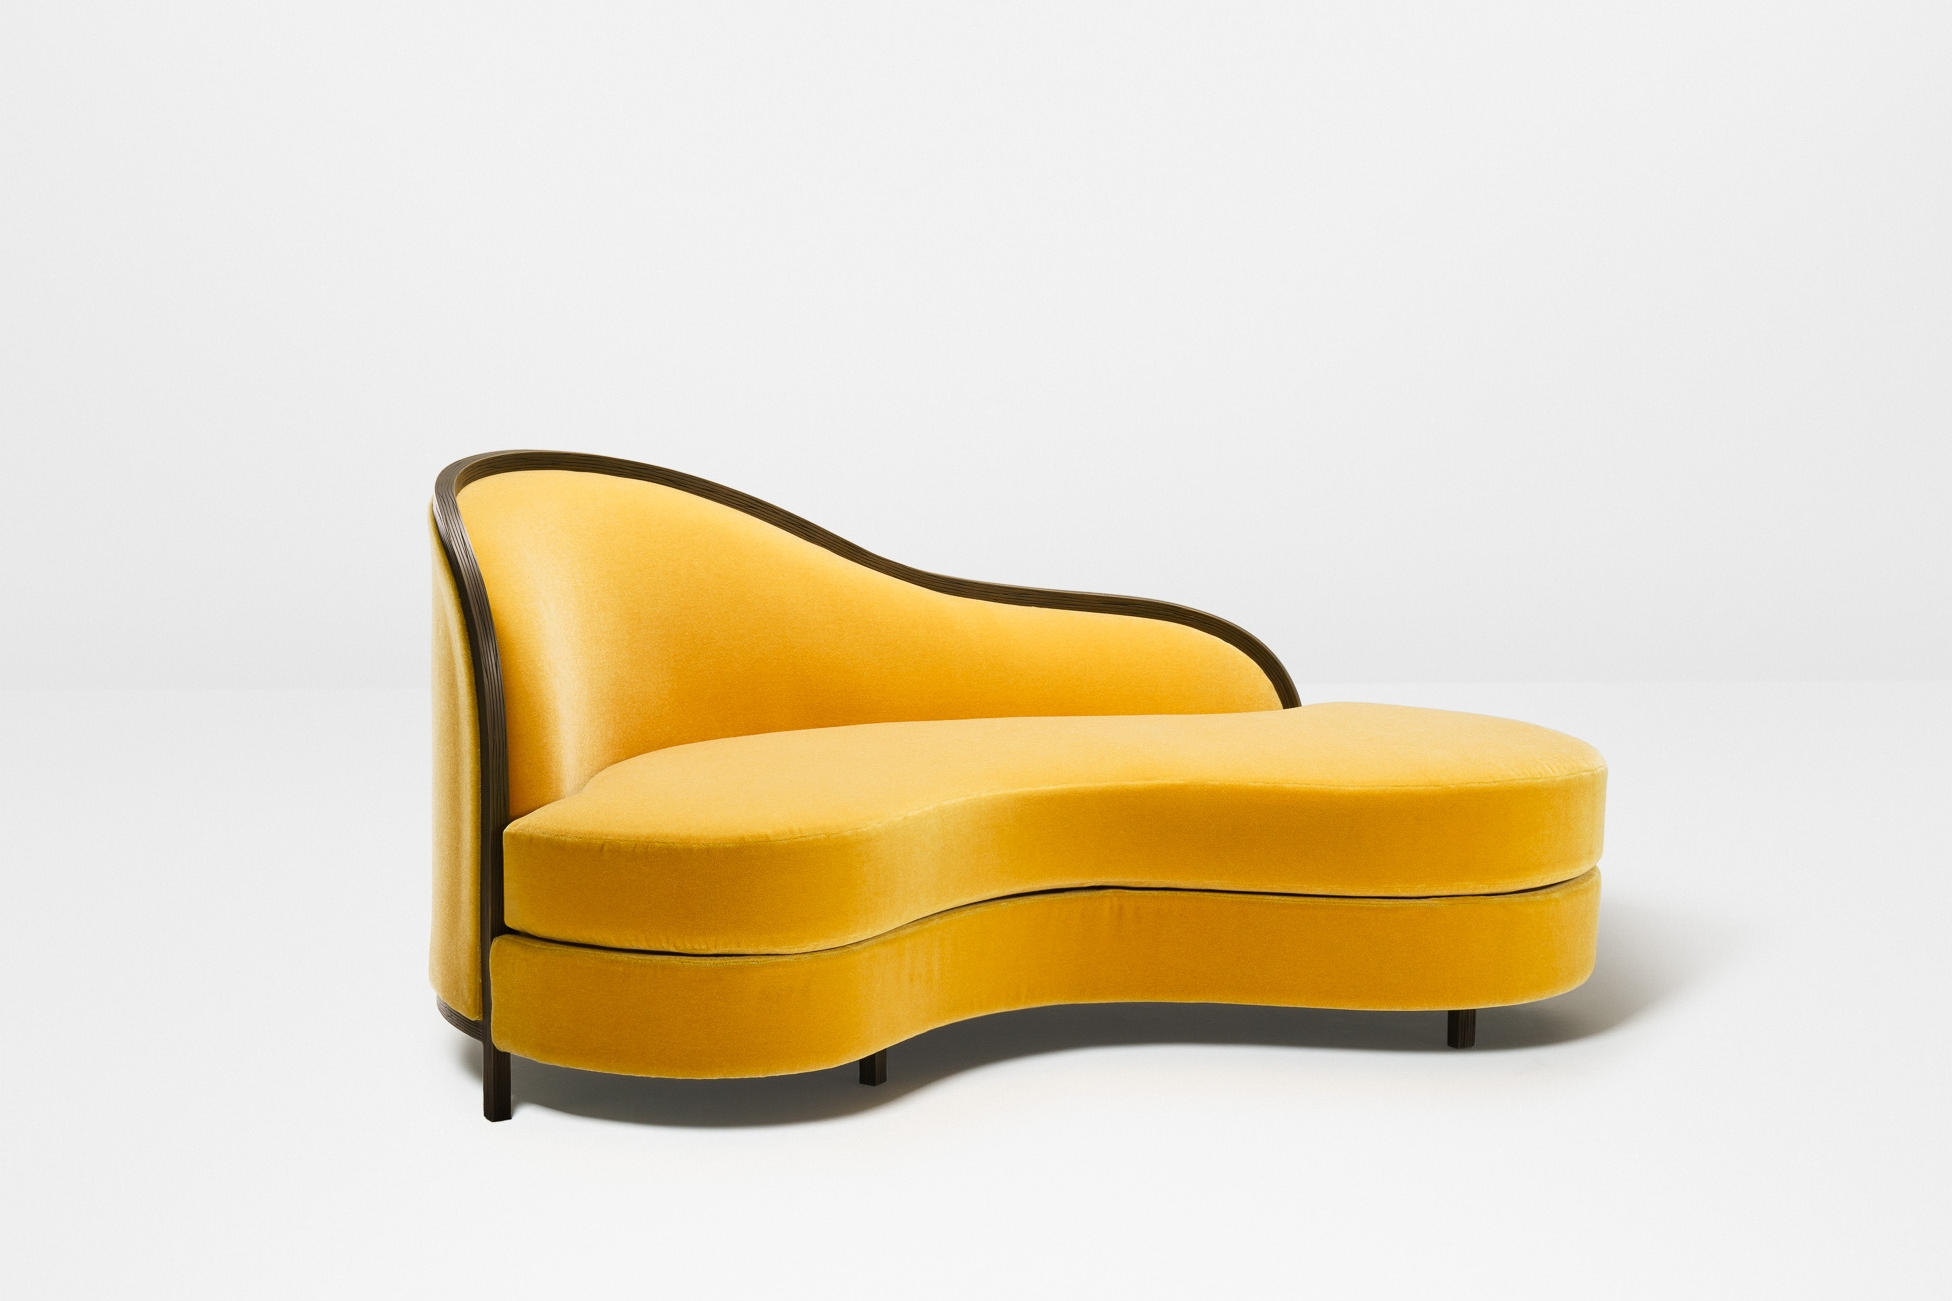 Victoire daybed - front-LOW-RES.jpg